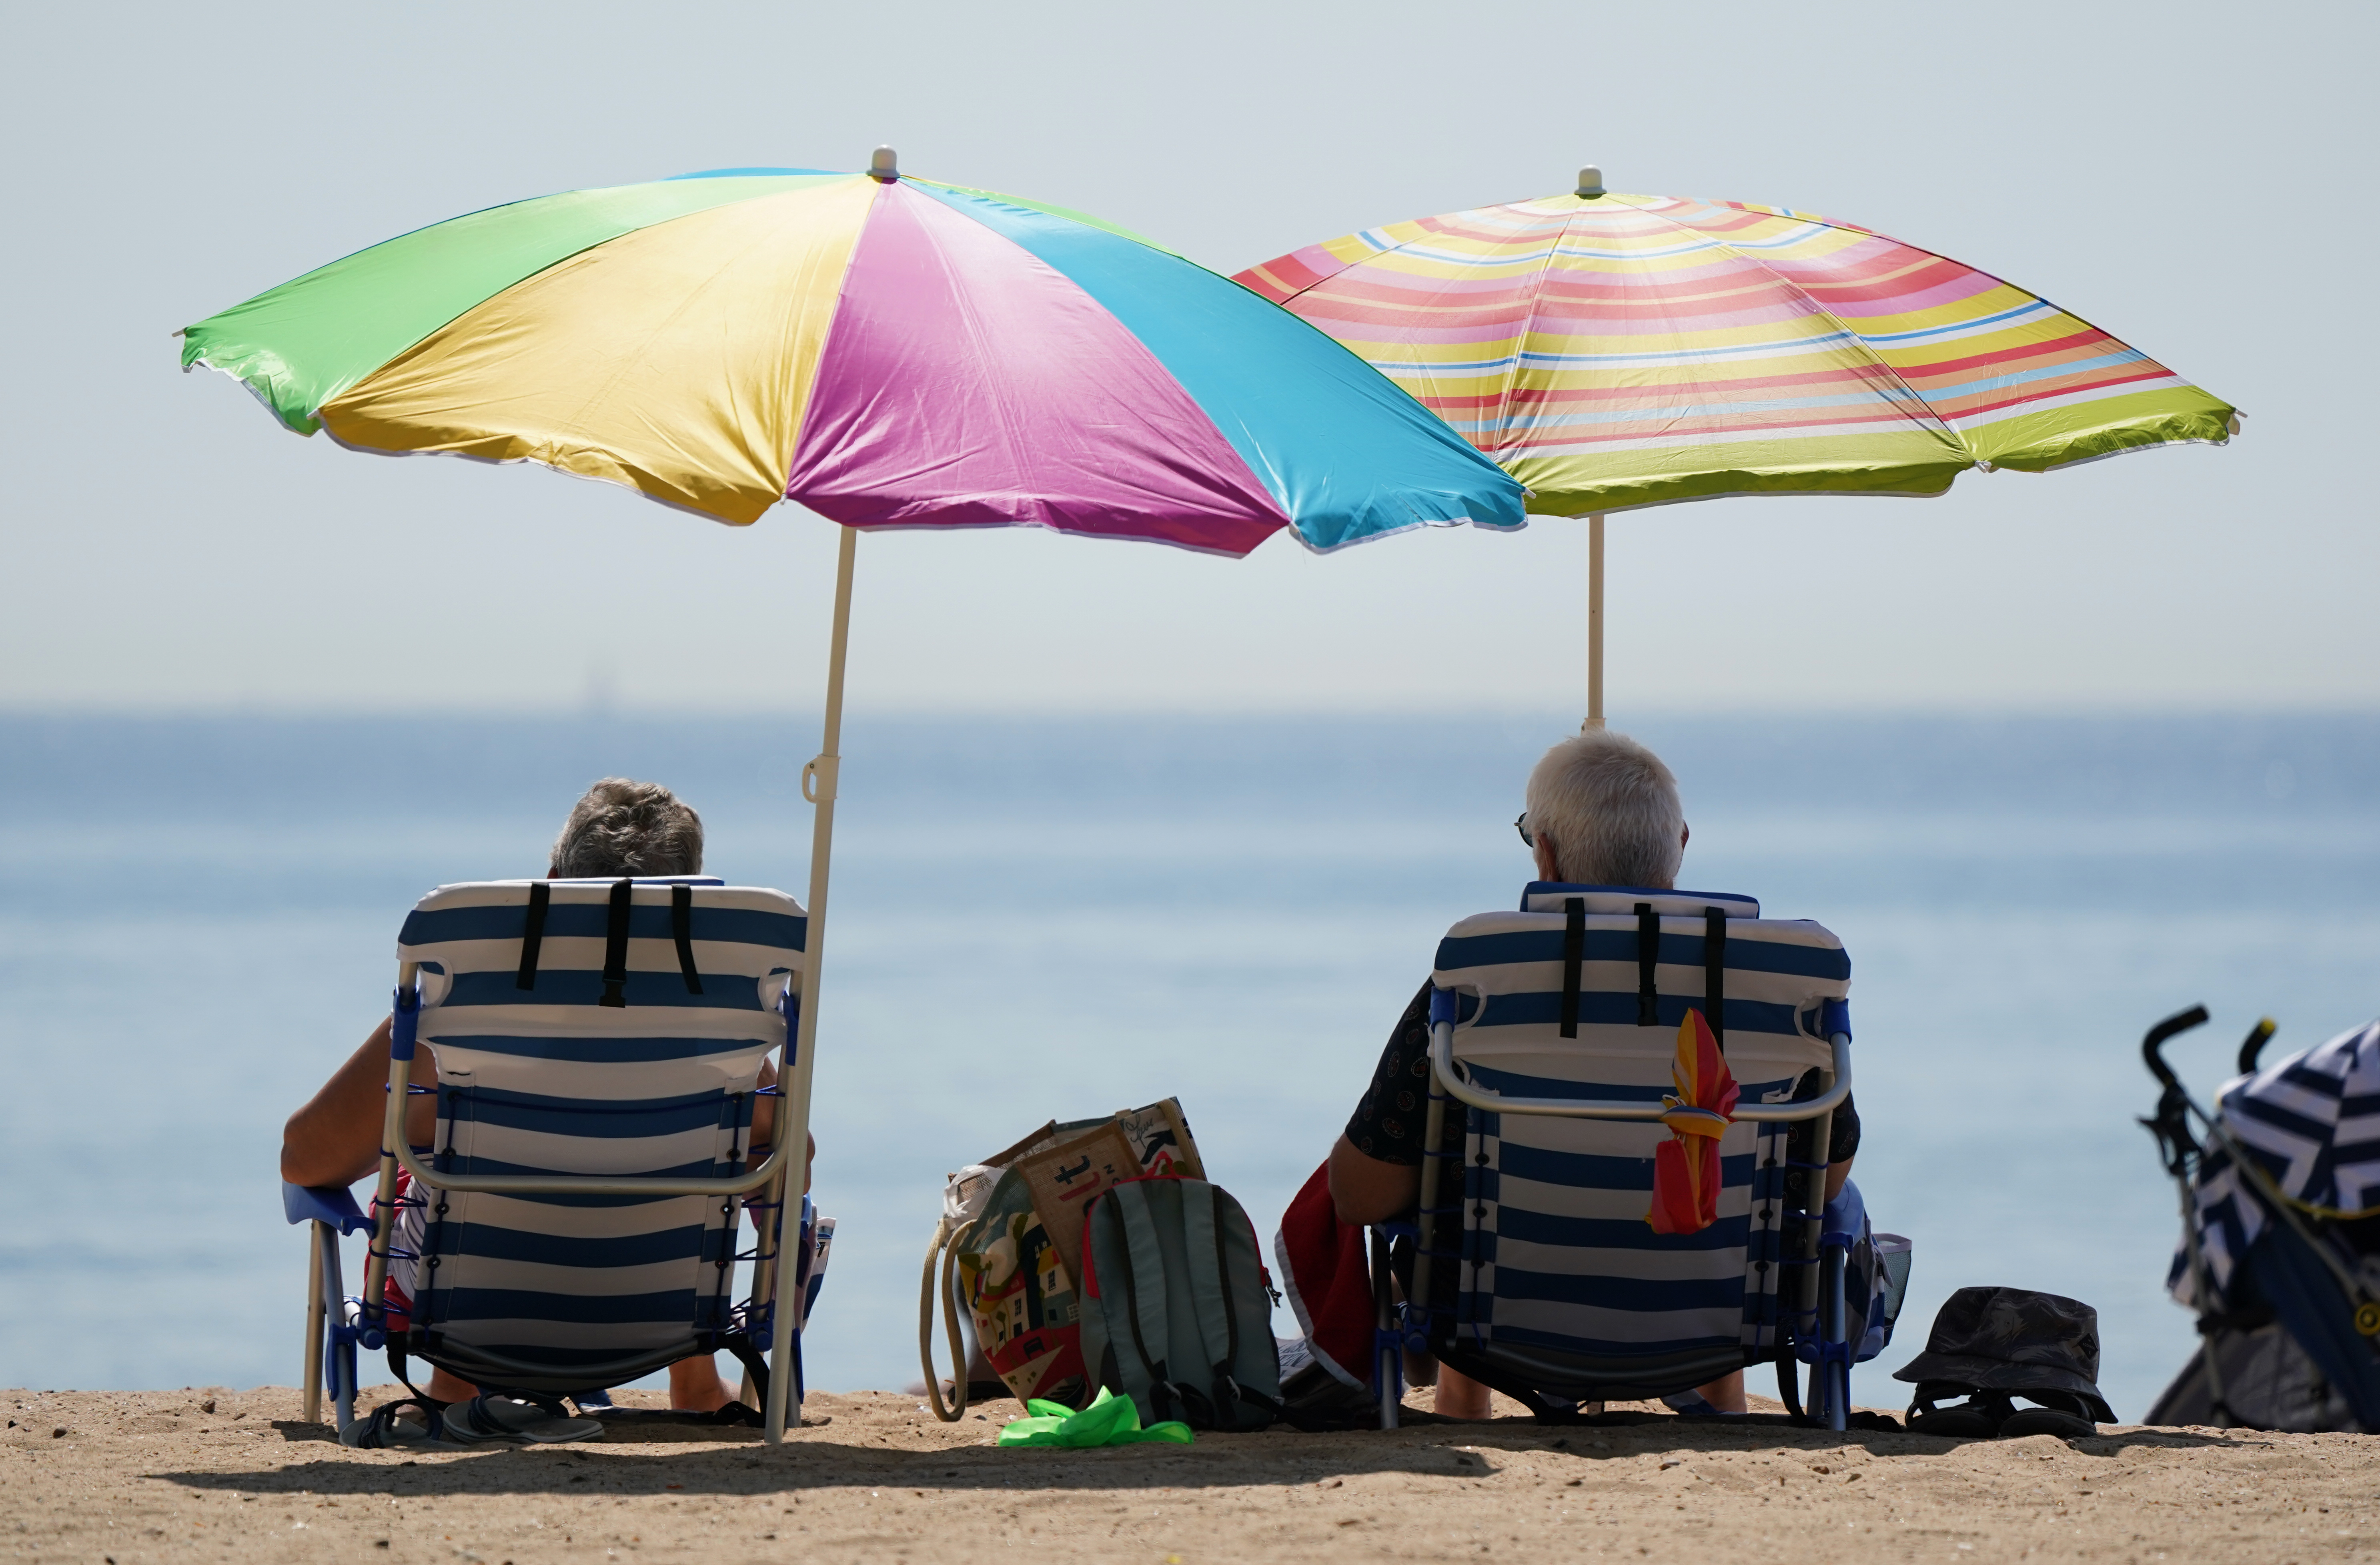 <p>People sit under umbrallas as they enjoy the hot weather at Bournemouth Beach in Dorset. Picture date: Tuesday July 20, 2021.</p>